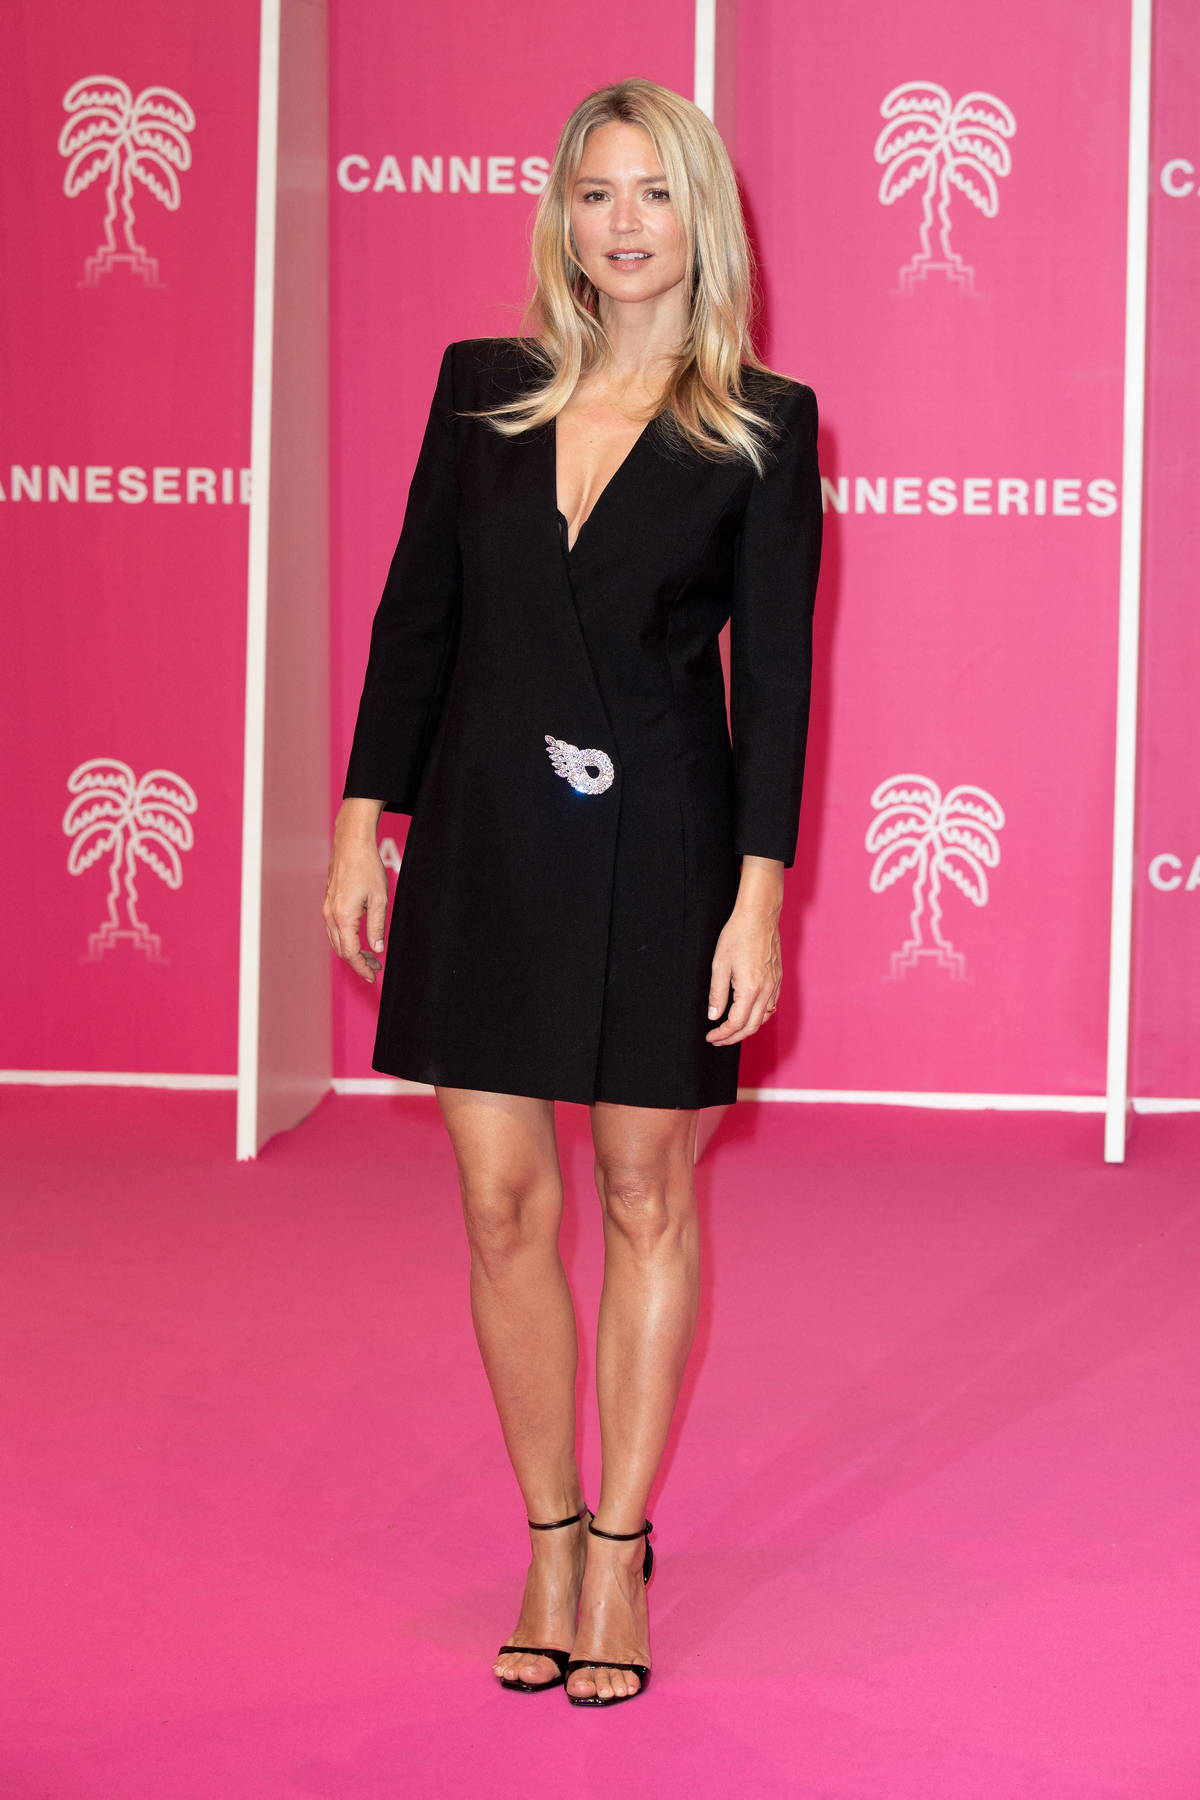 Virginie Efira attends the 4th edition of the Cannes International Series Festival in Cannes, France